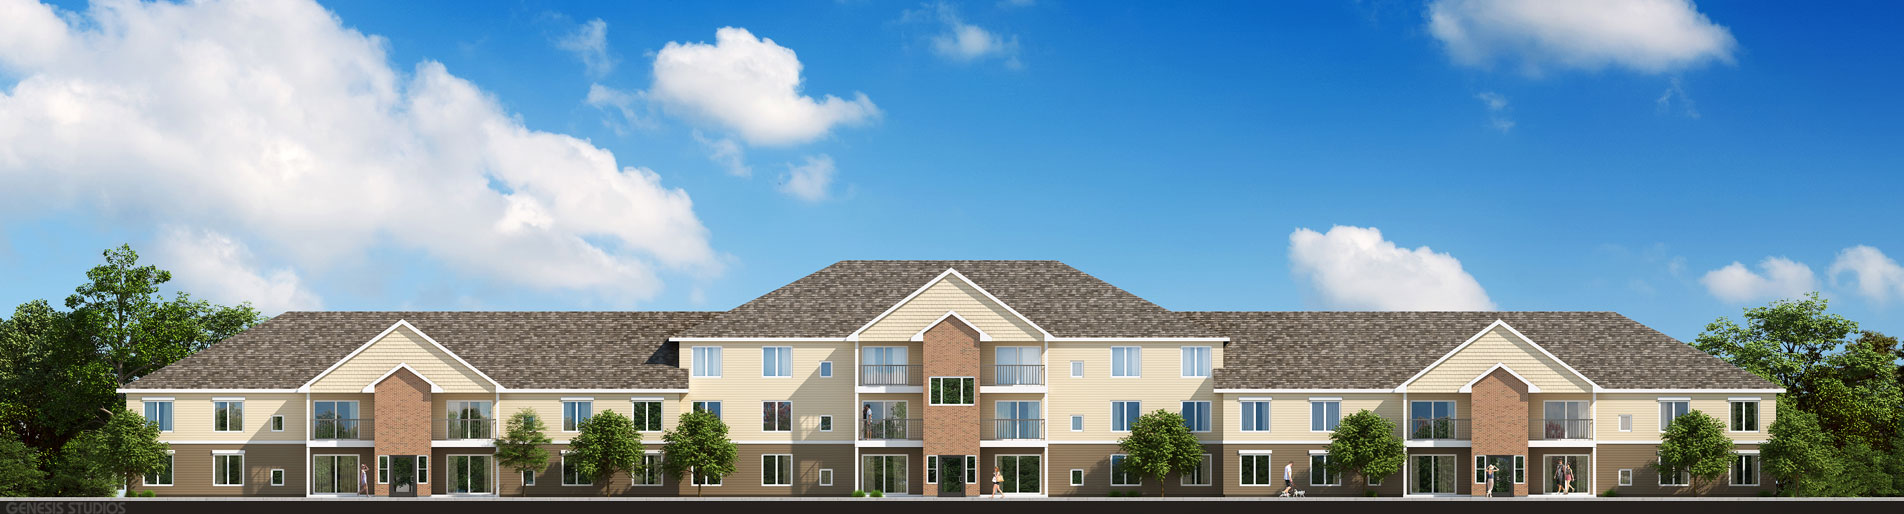 717028 Digital Photorealistic Architectural Rendering of an Elevation for MRD Architectural Resources